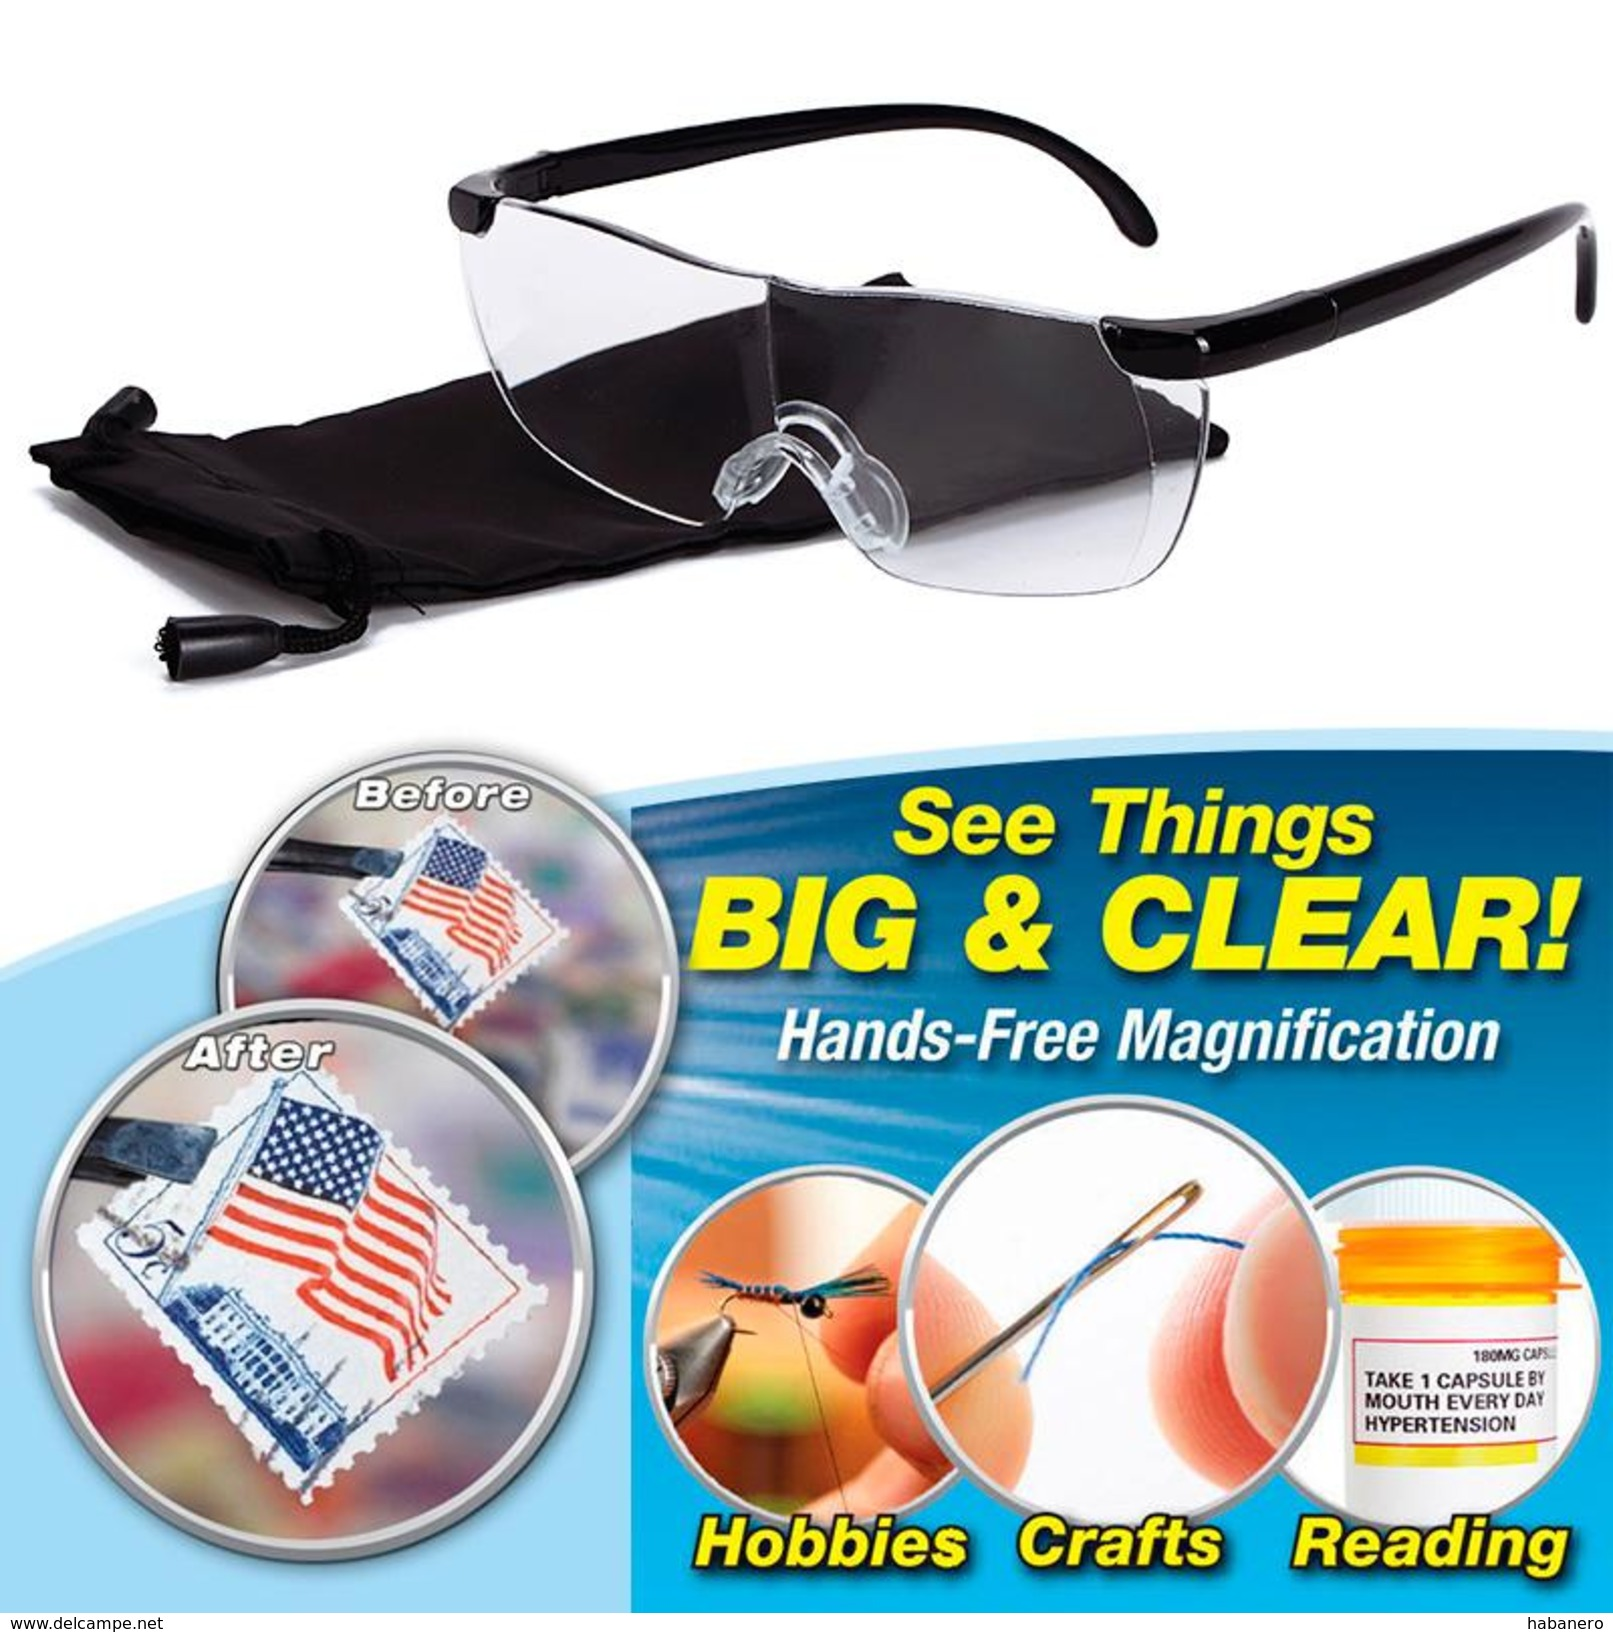 See Things Big & Clear Pro Vision 160% Magnifying Presbyopic Glasses - Other Book Accessories